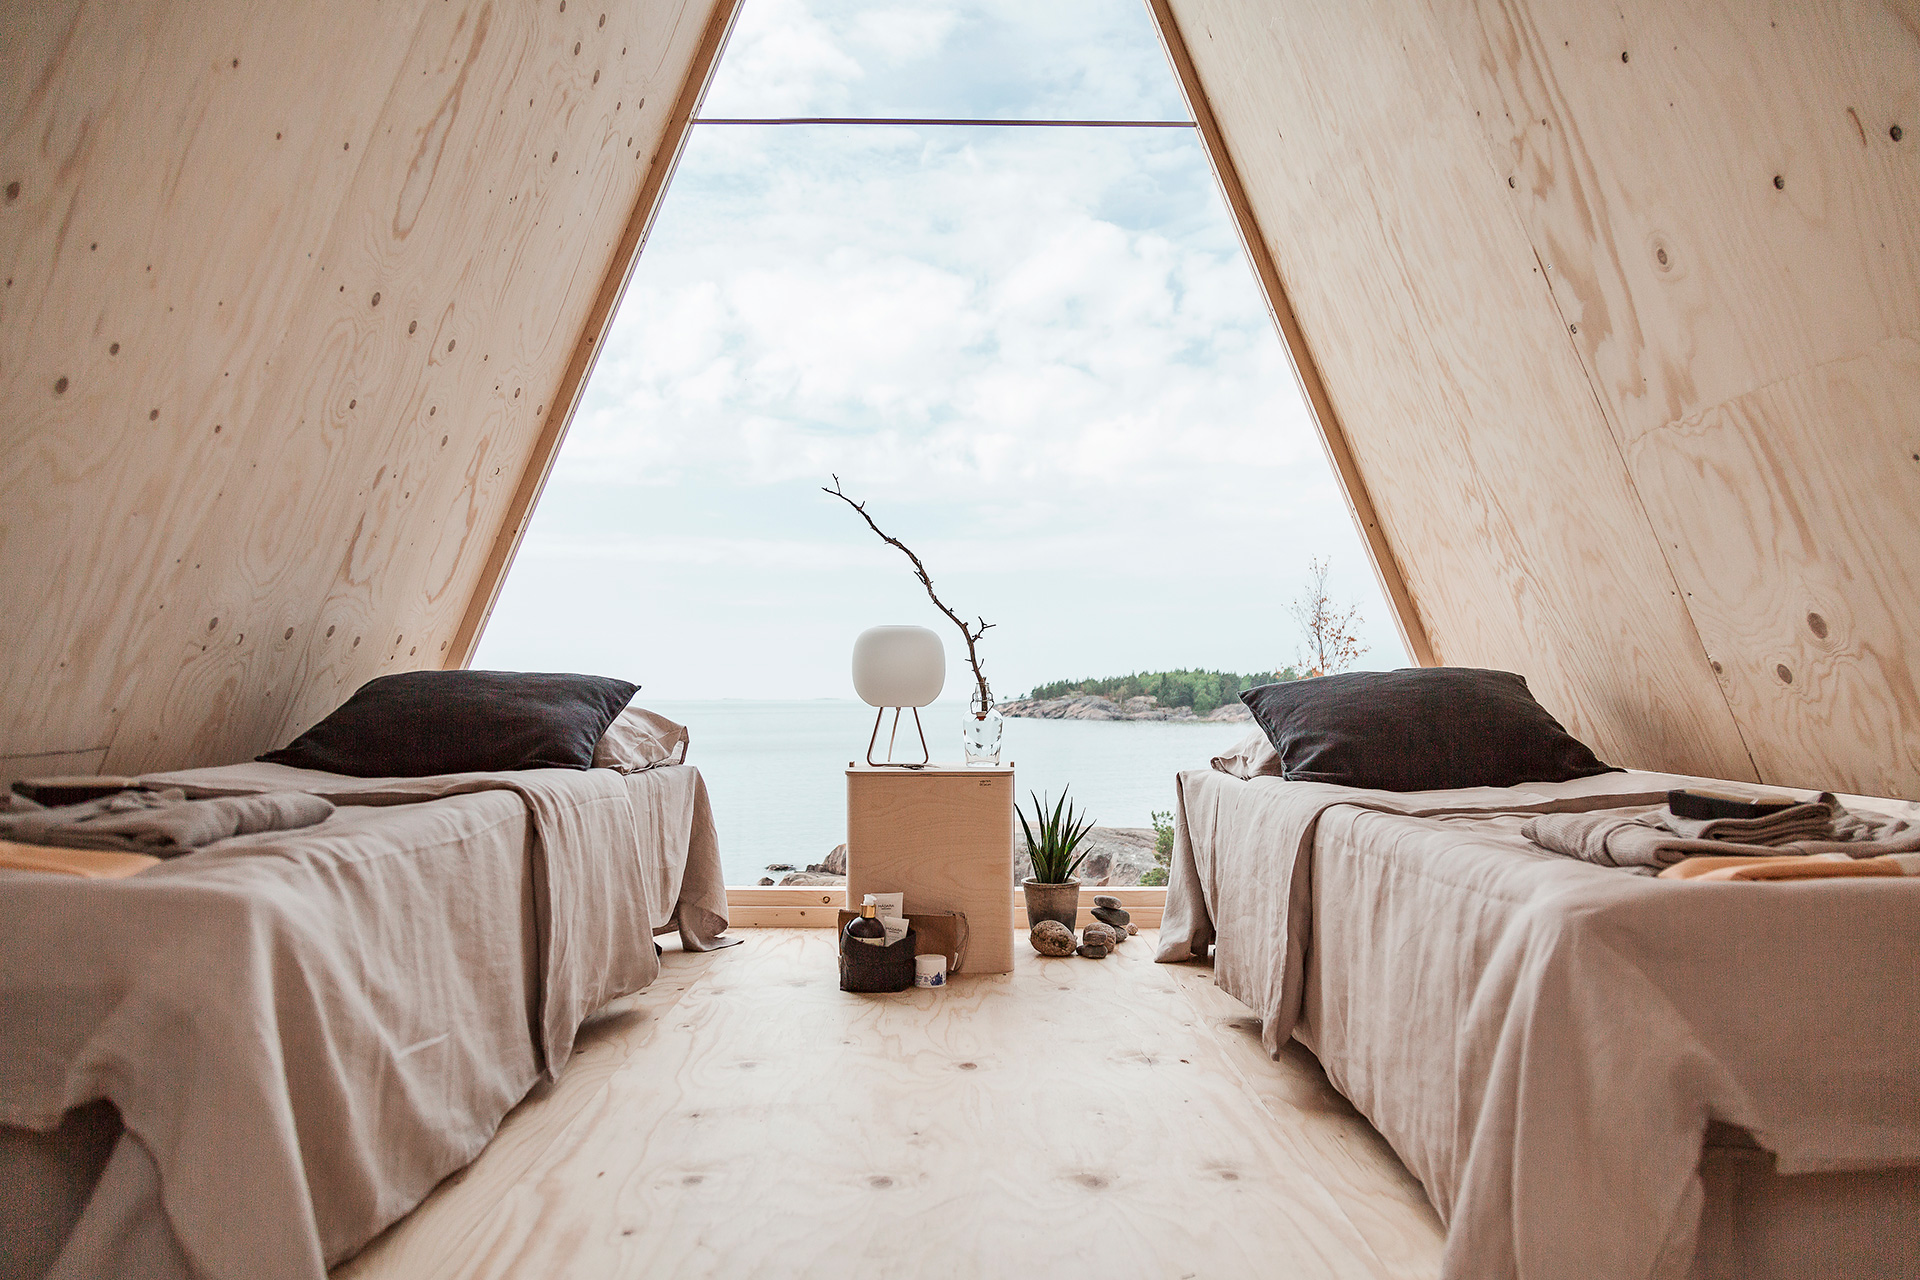 Nolla Cabin is an experiment that explores how to live with minimal footprint, and can be booked on Airbnb | Diversity in living, a changing lifestyle| STIRworld